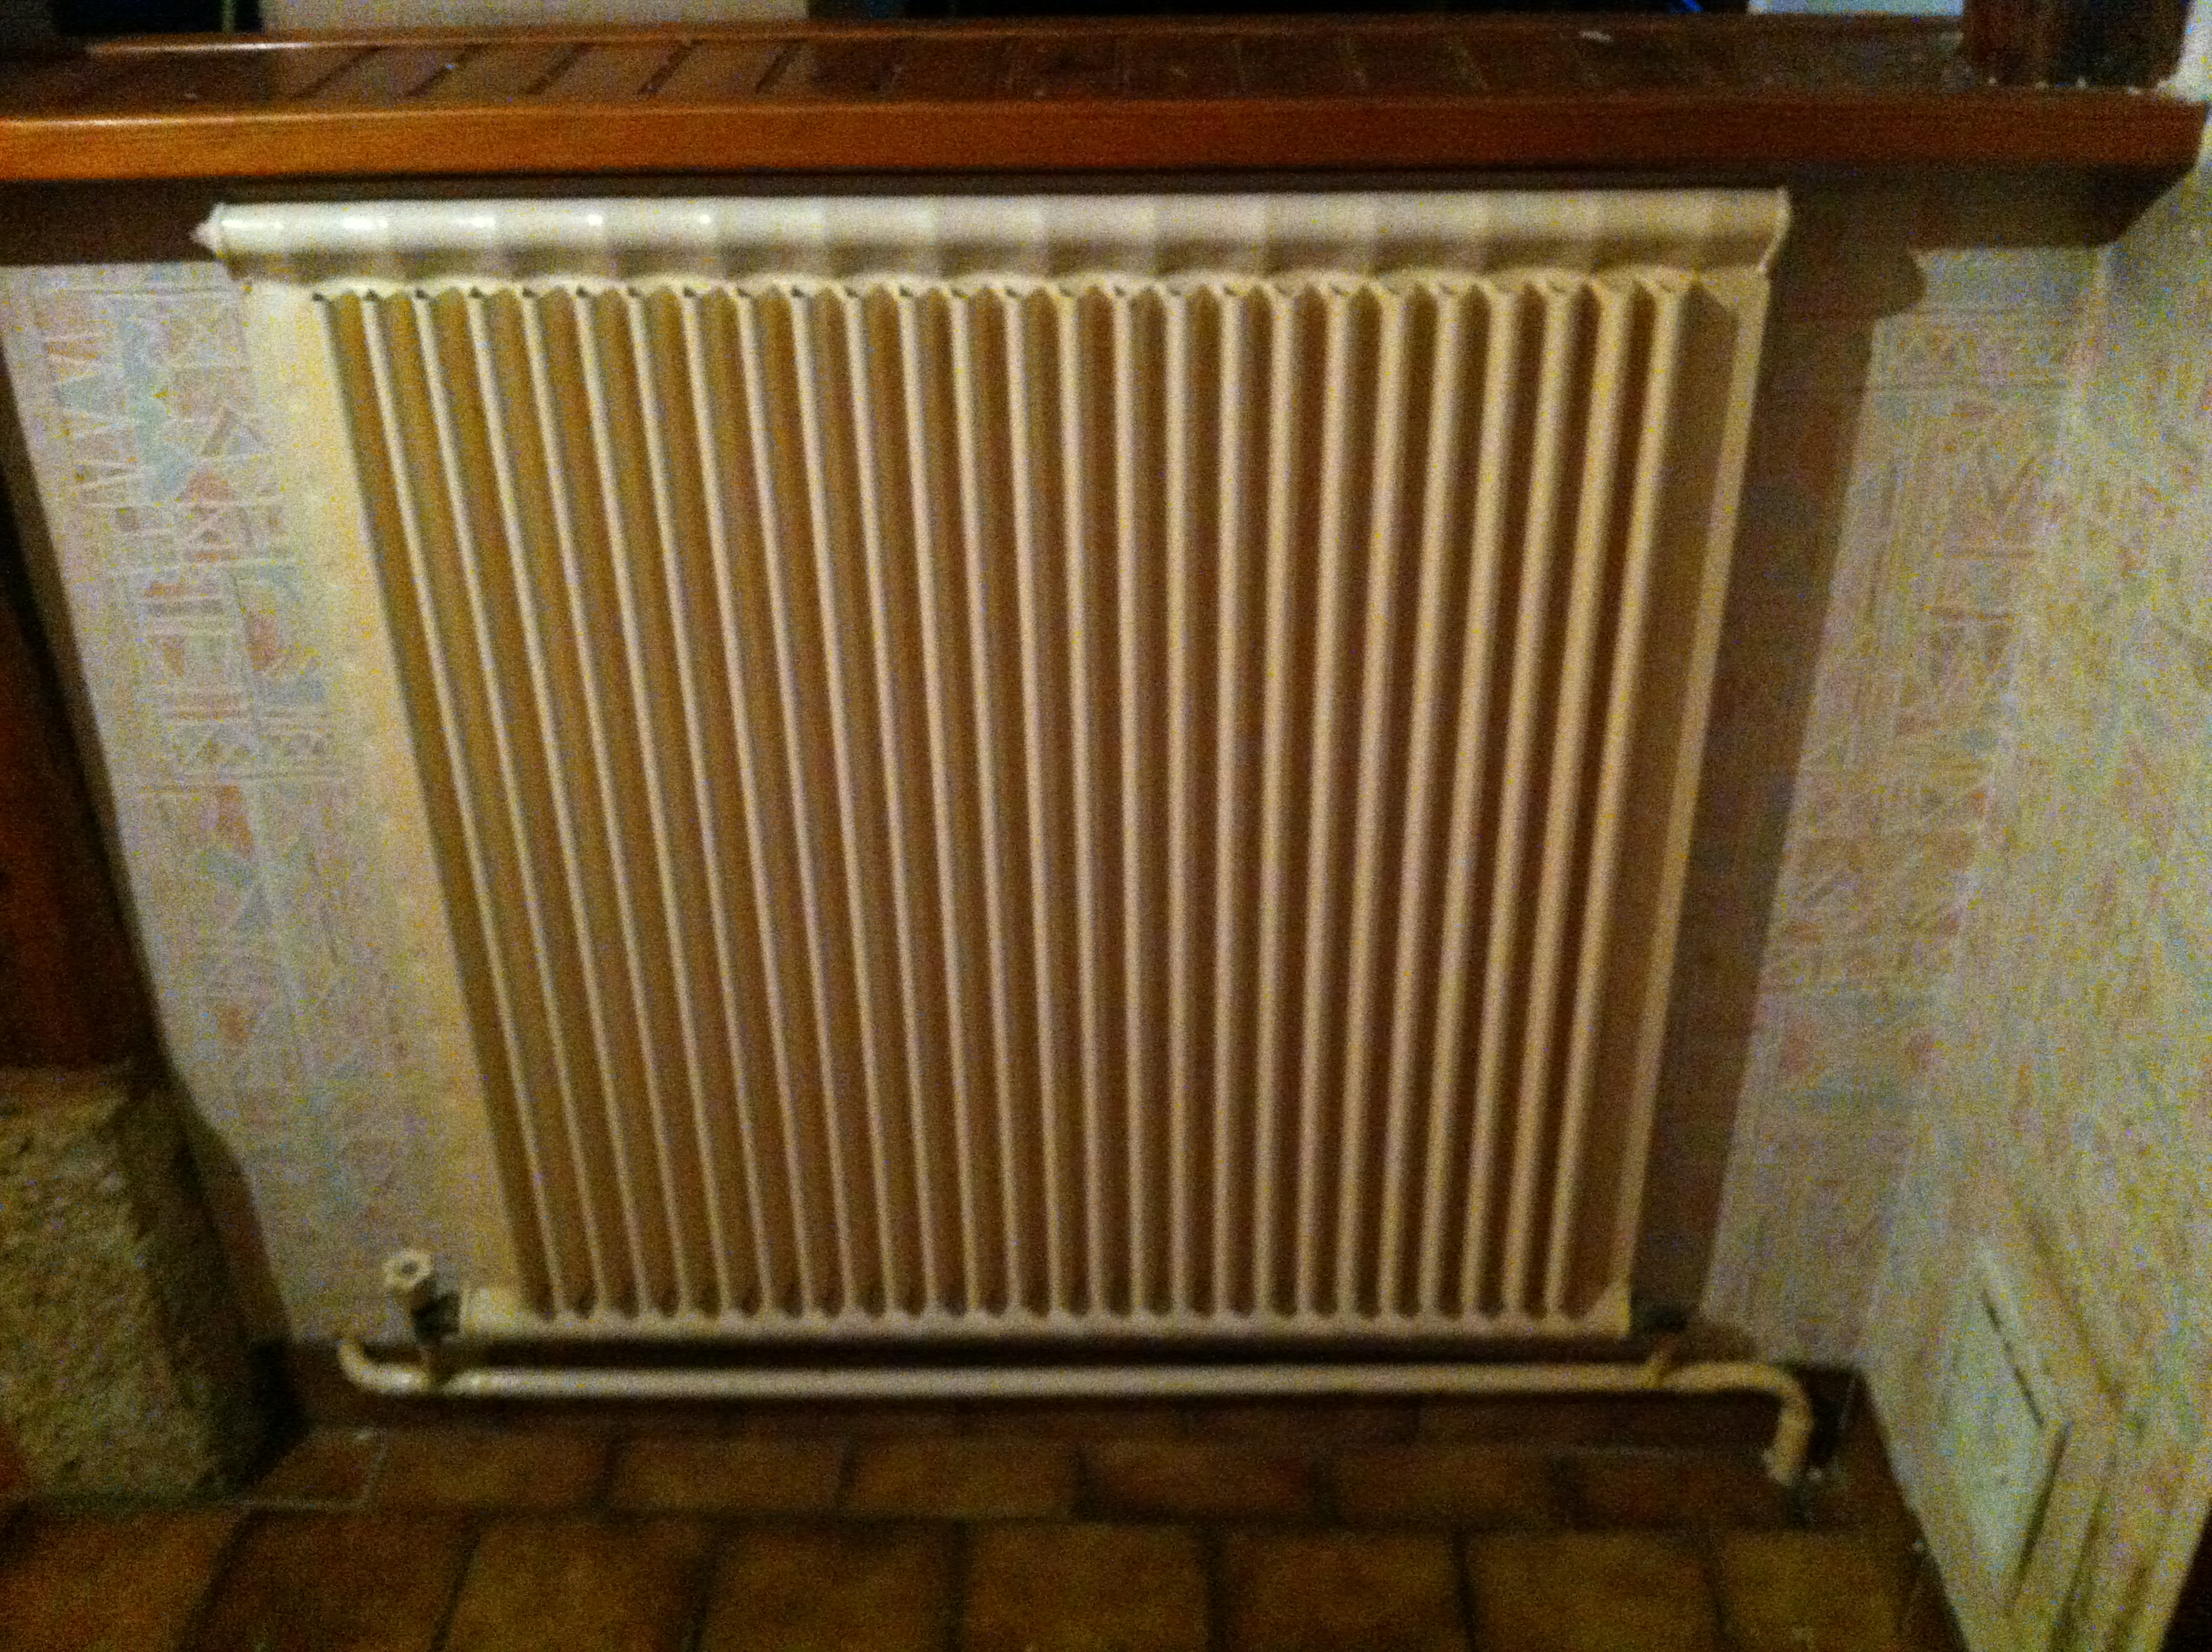 Re d monter un radiateur en fonte communaut leroy merlin - Demonter un radiateur en fonte ...